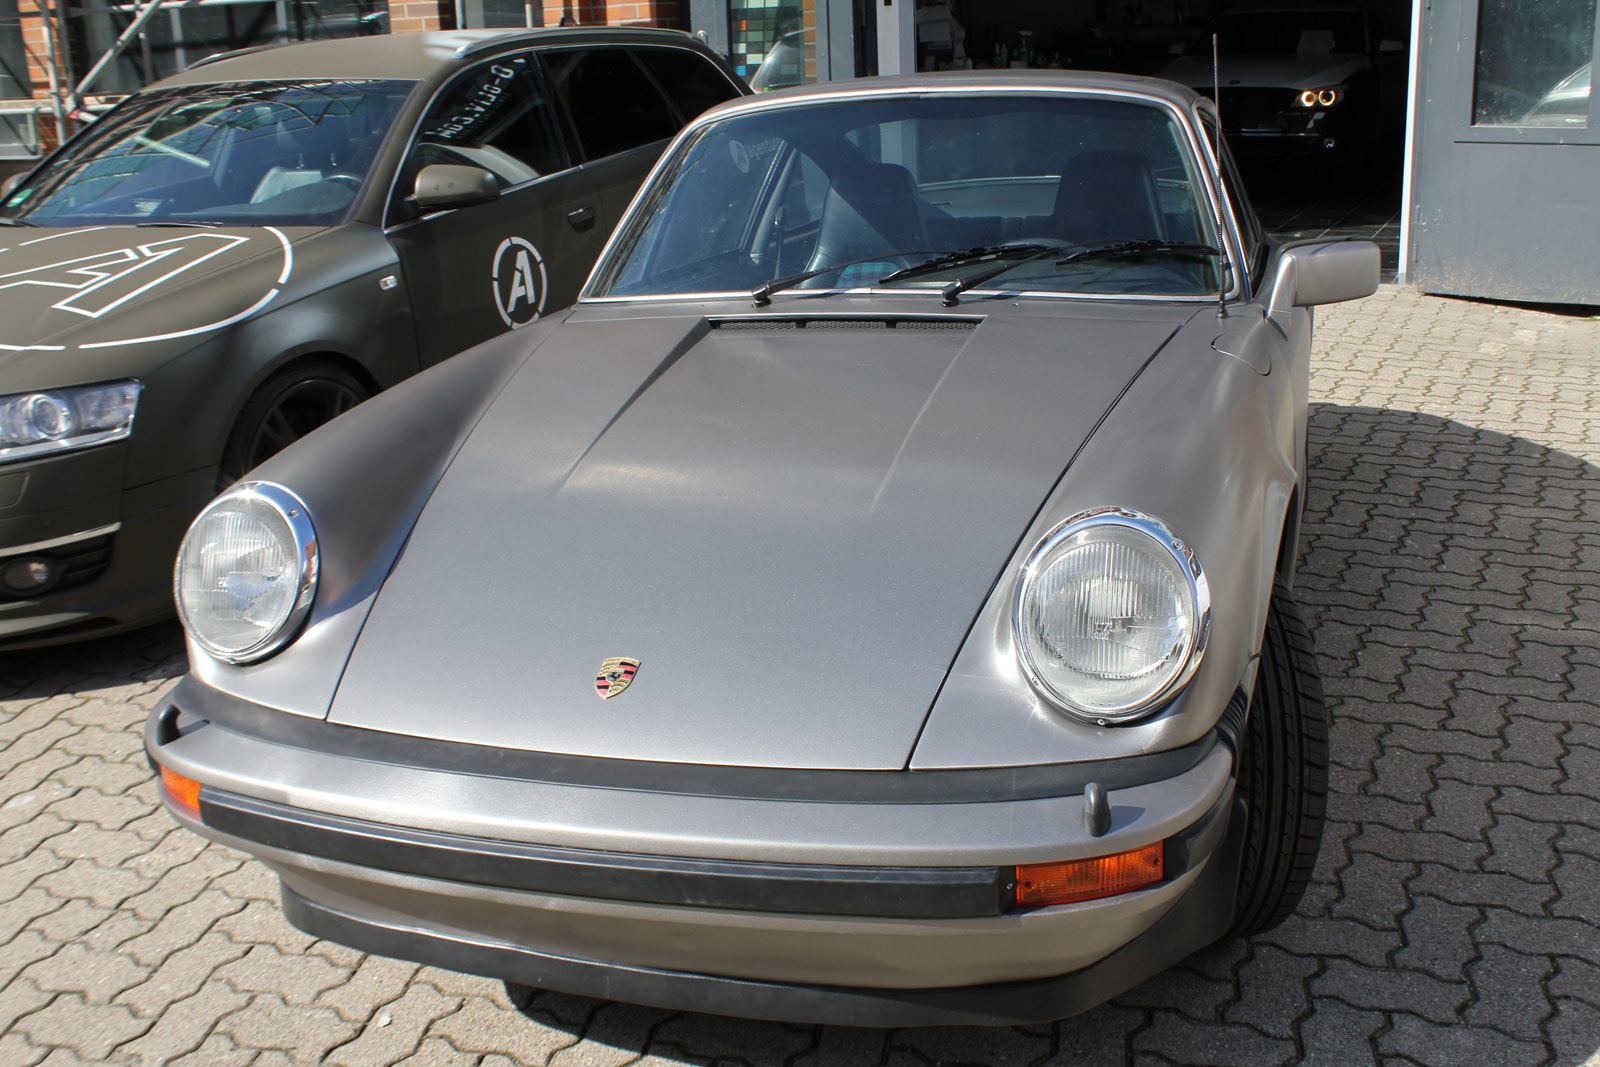 PORSCHE_911_FOLIERUNG_BRUSHED_STEEL_12